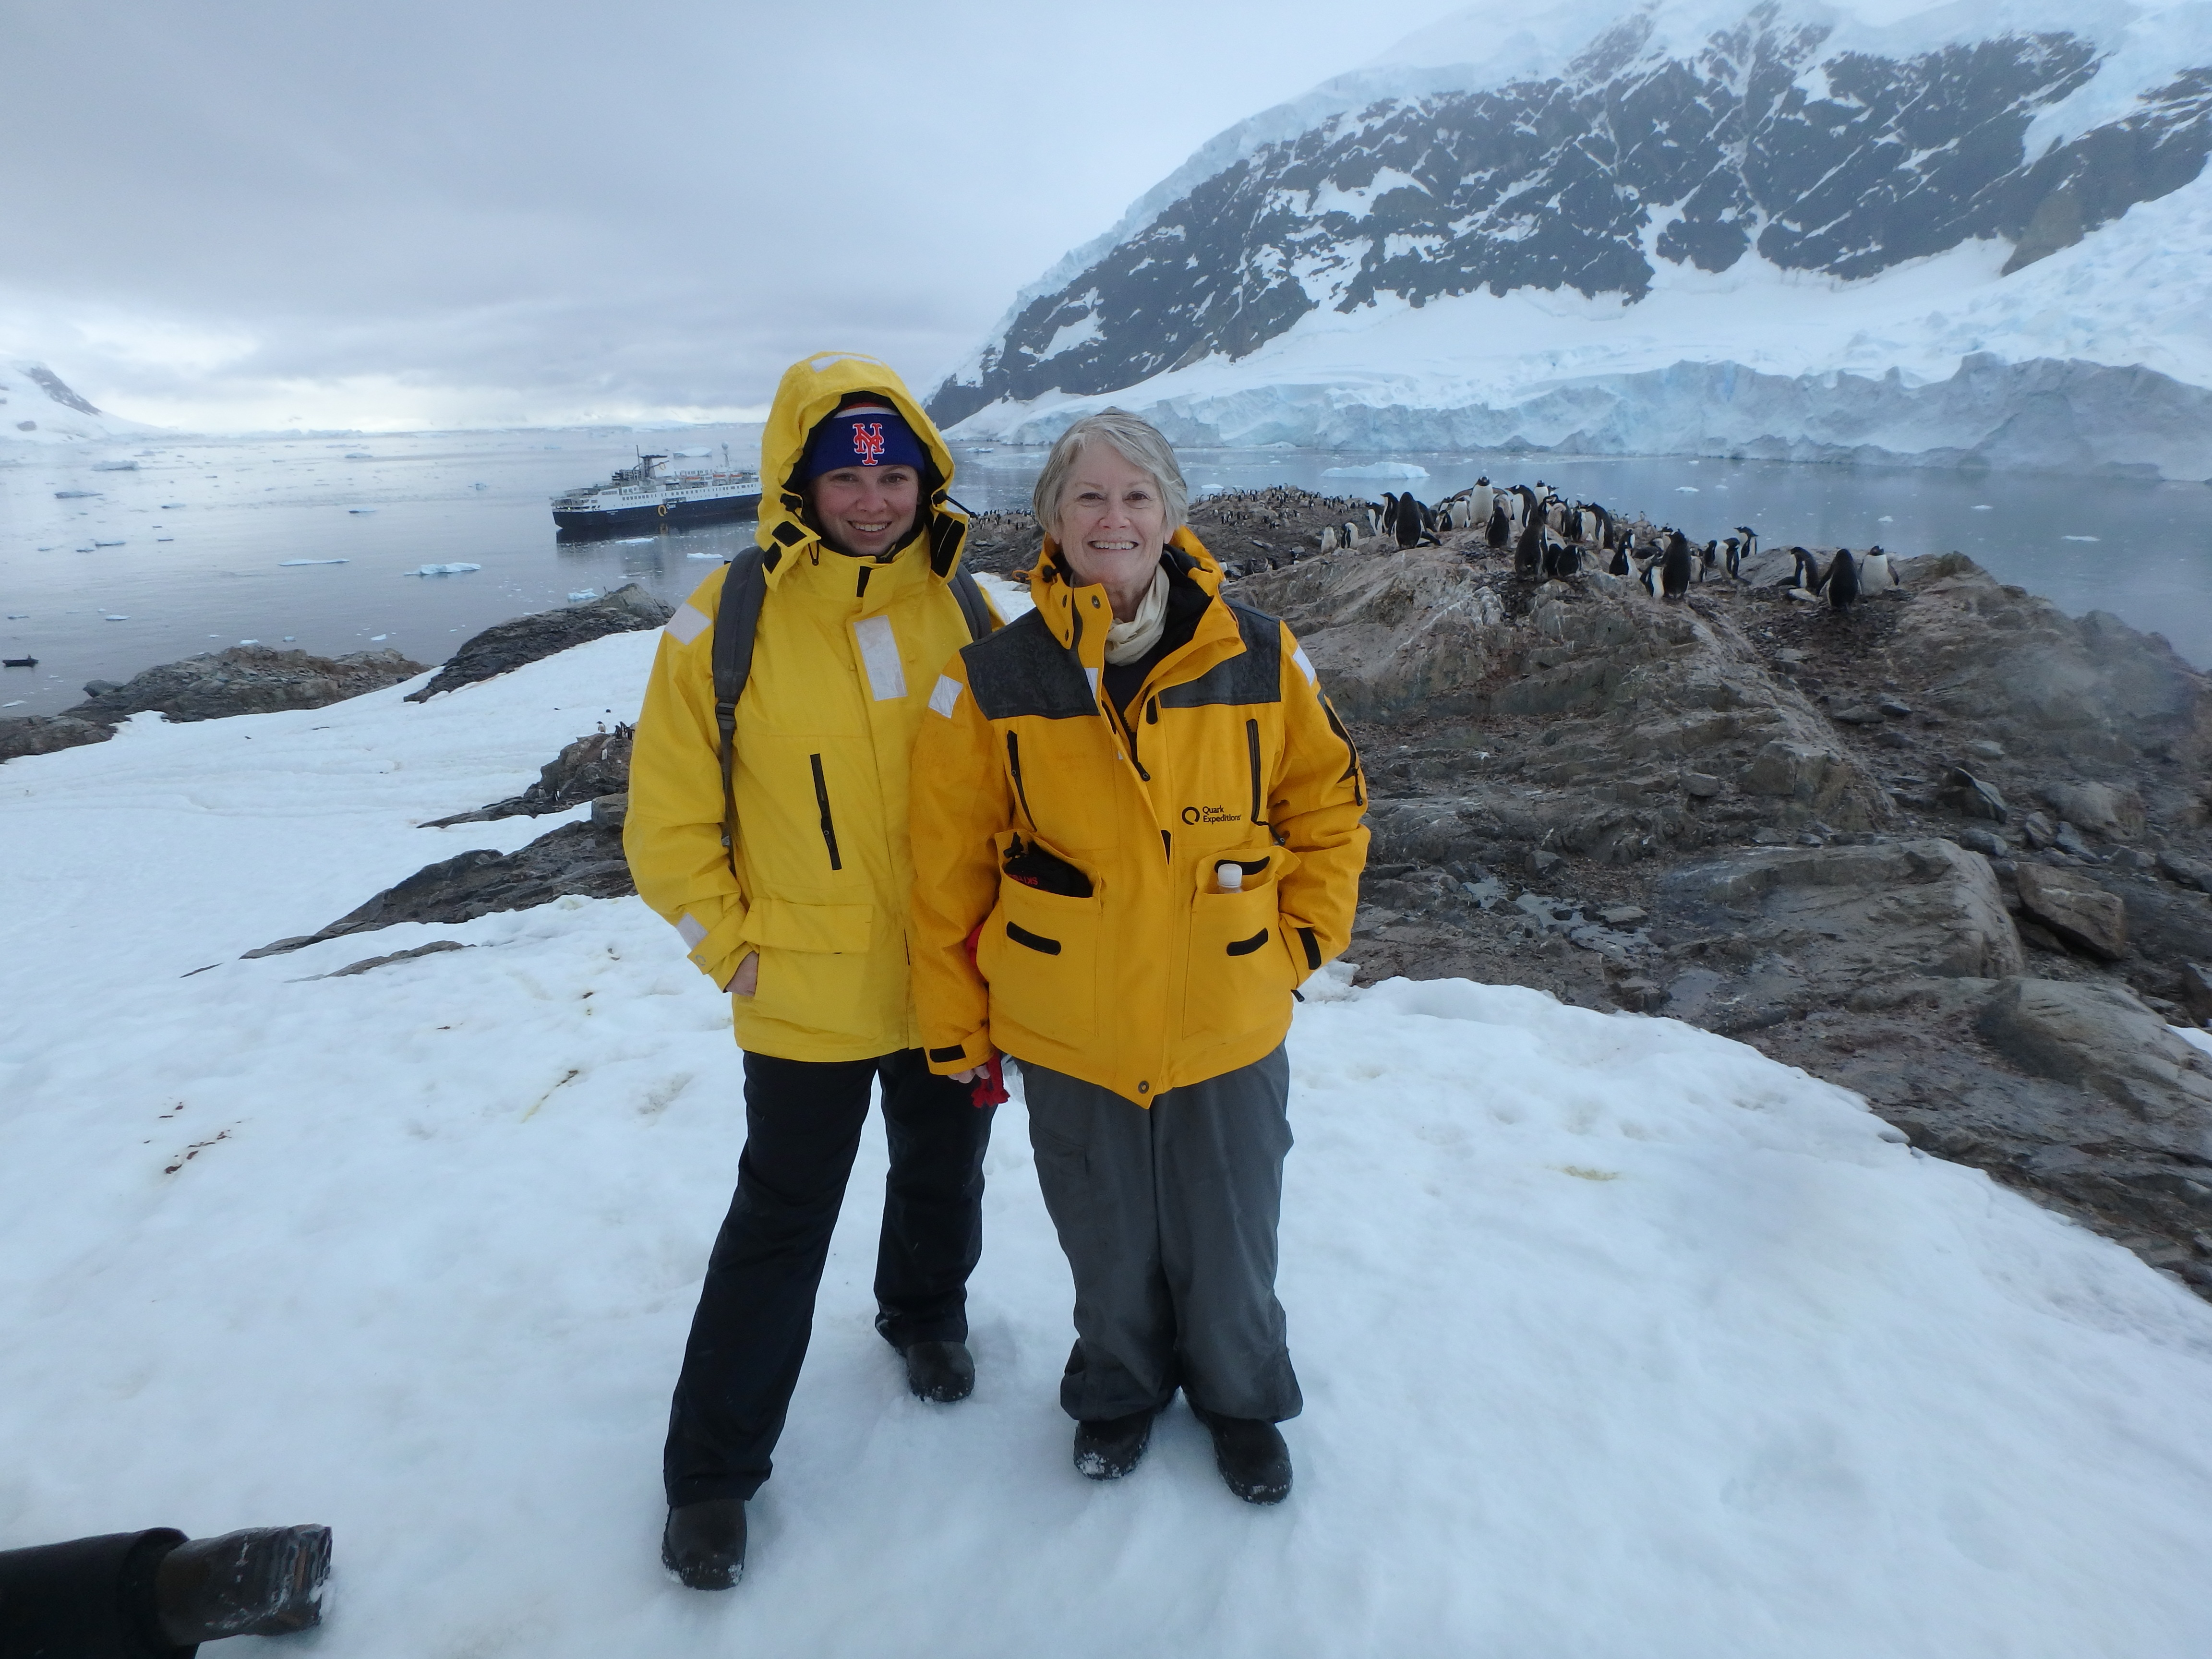 Katrina and her aunt pose with Adelie penguins in Antarctica